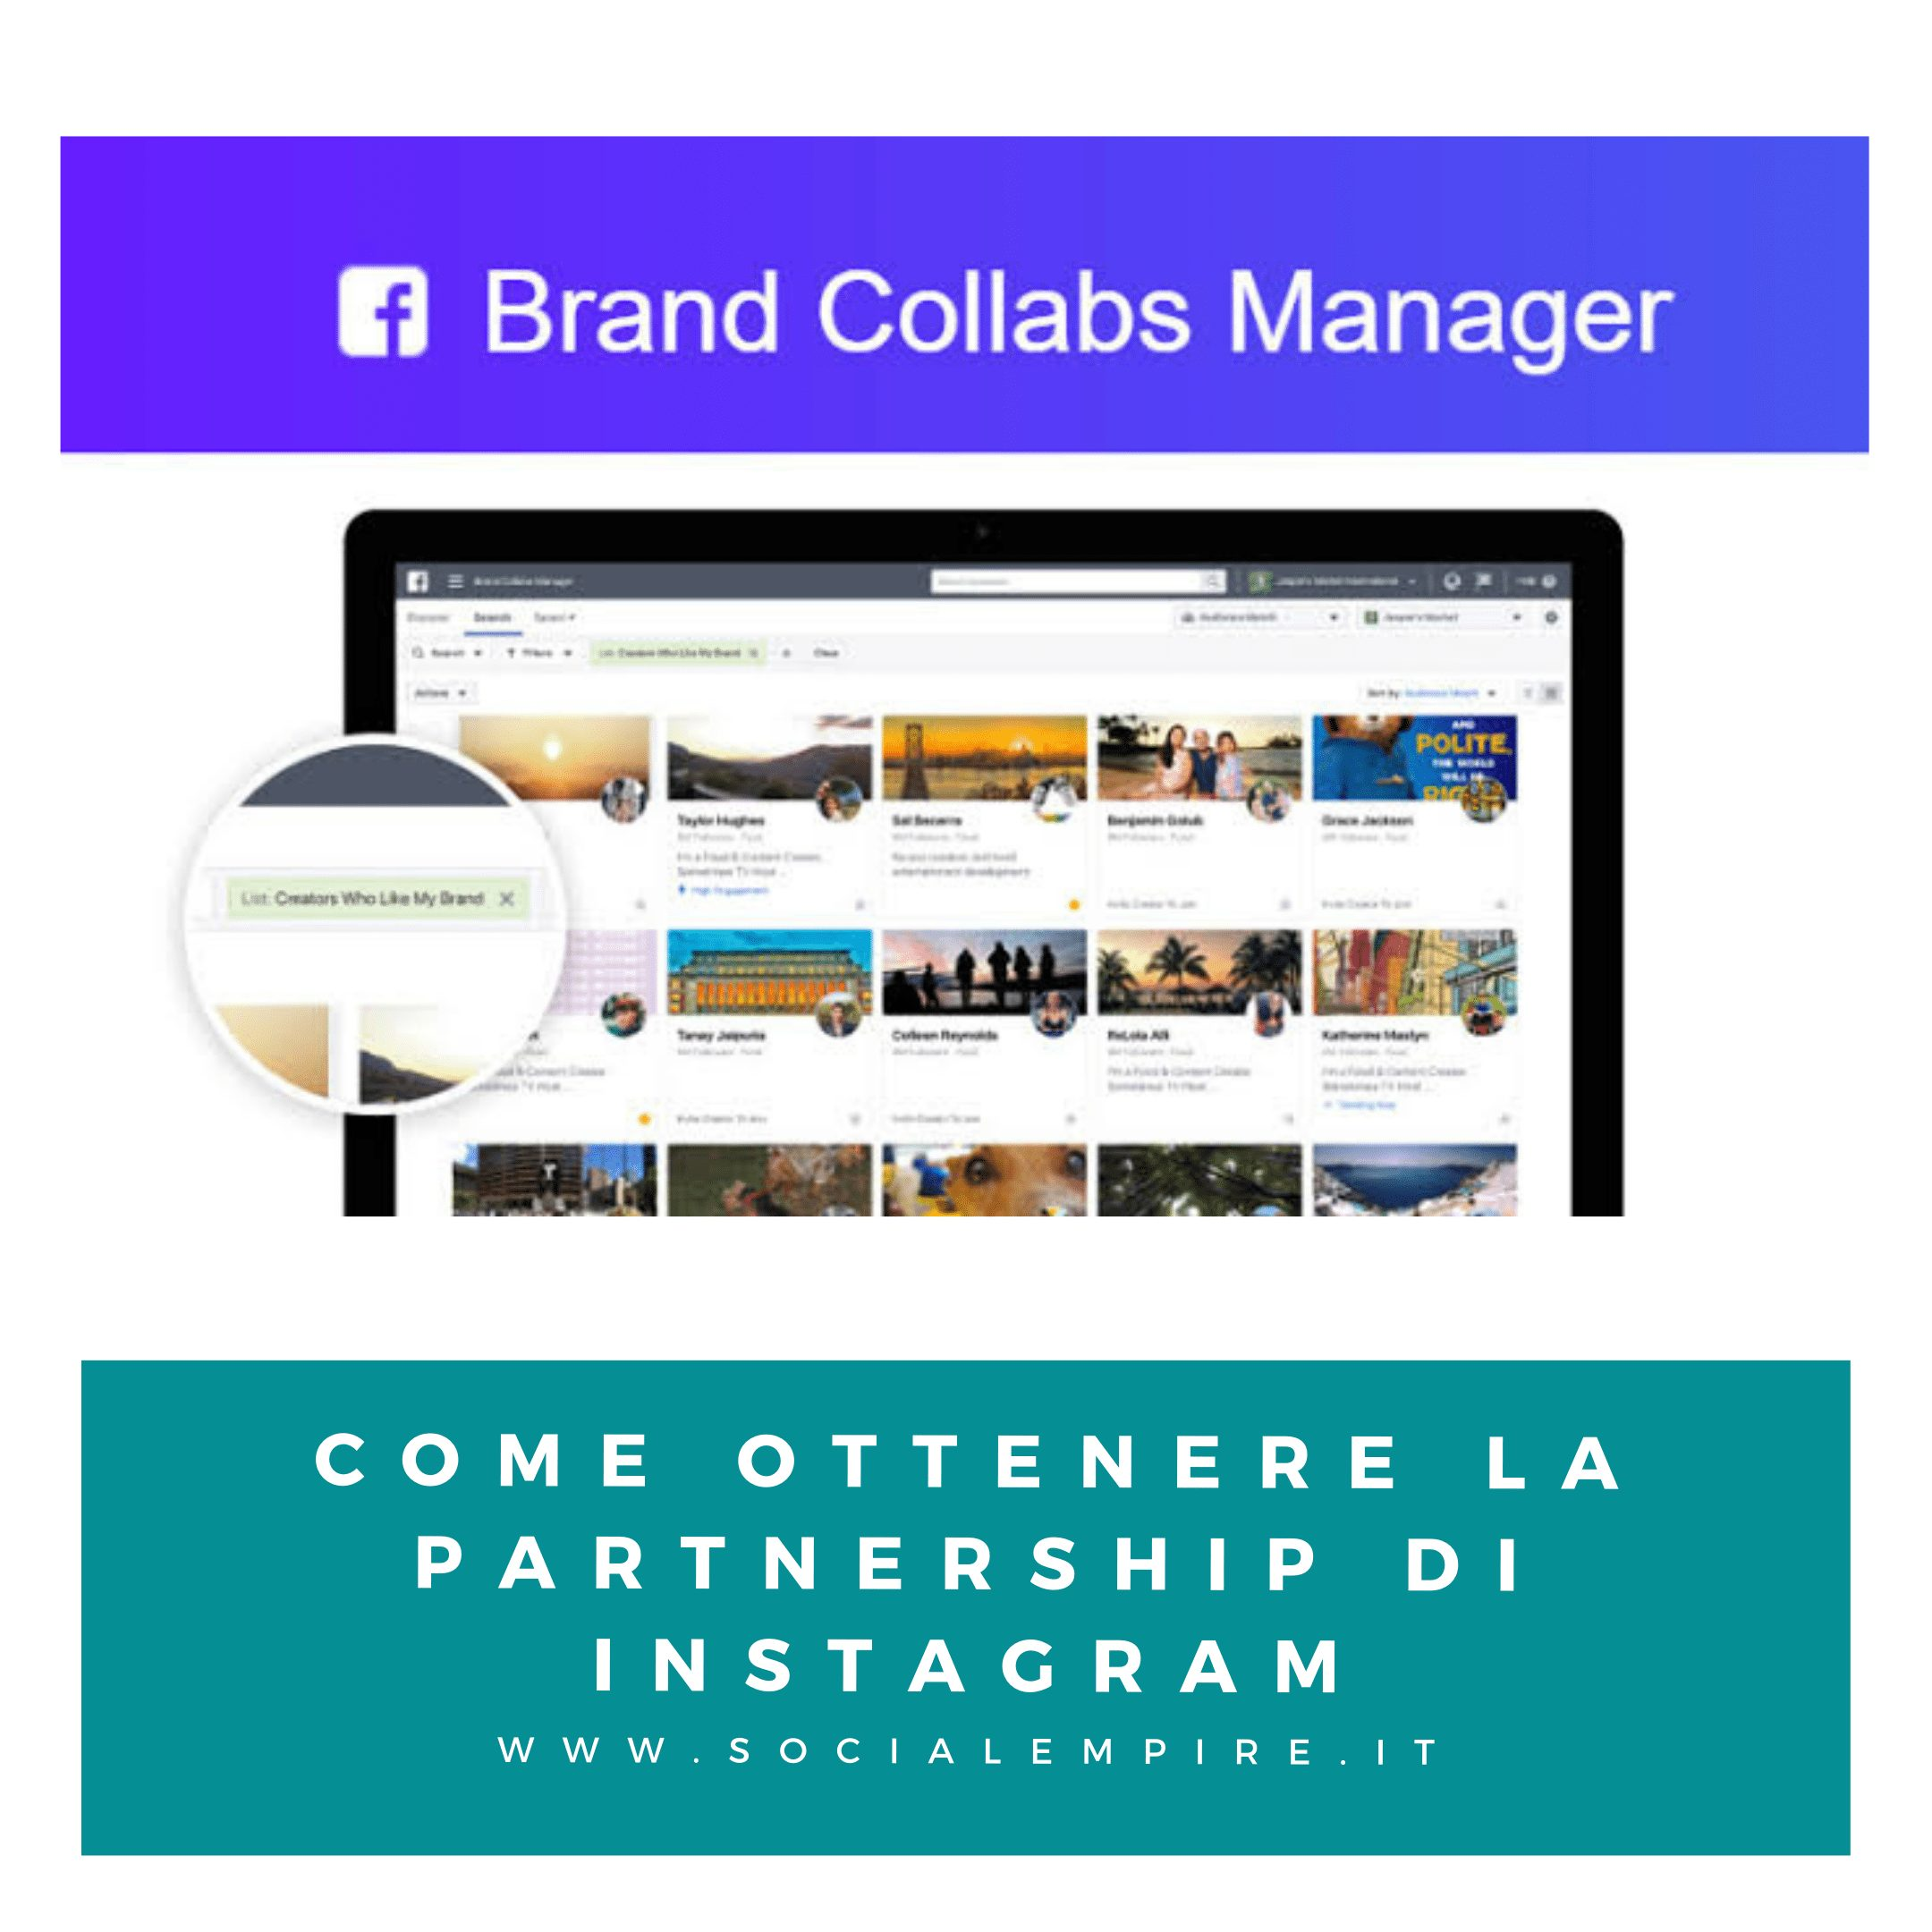 Brand Collabs Manager Instagram